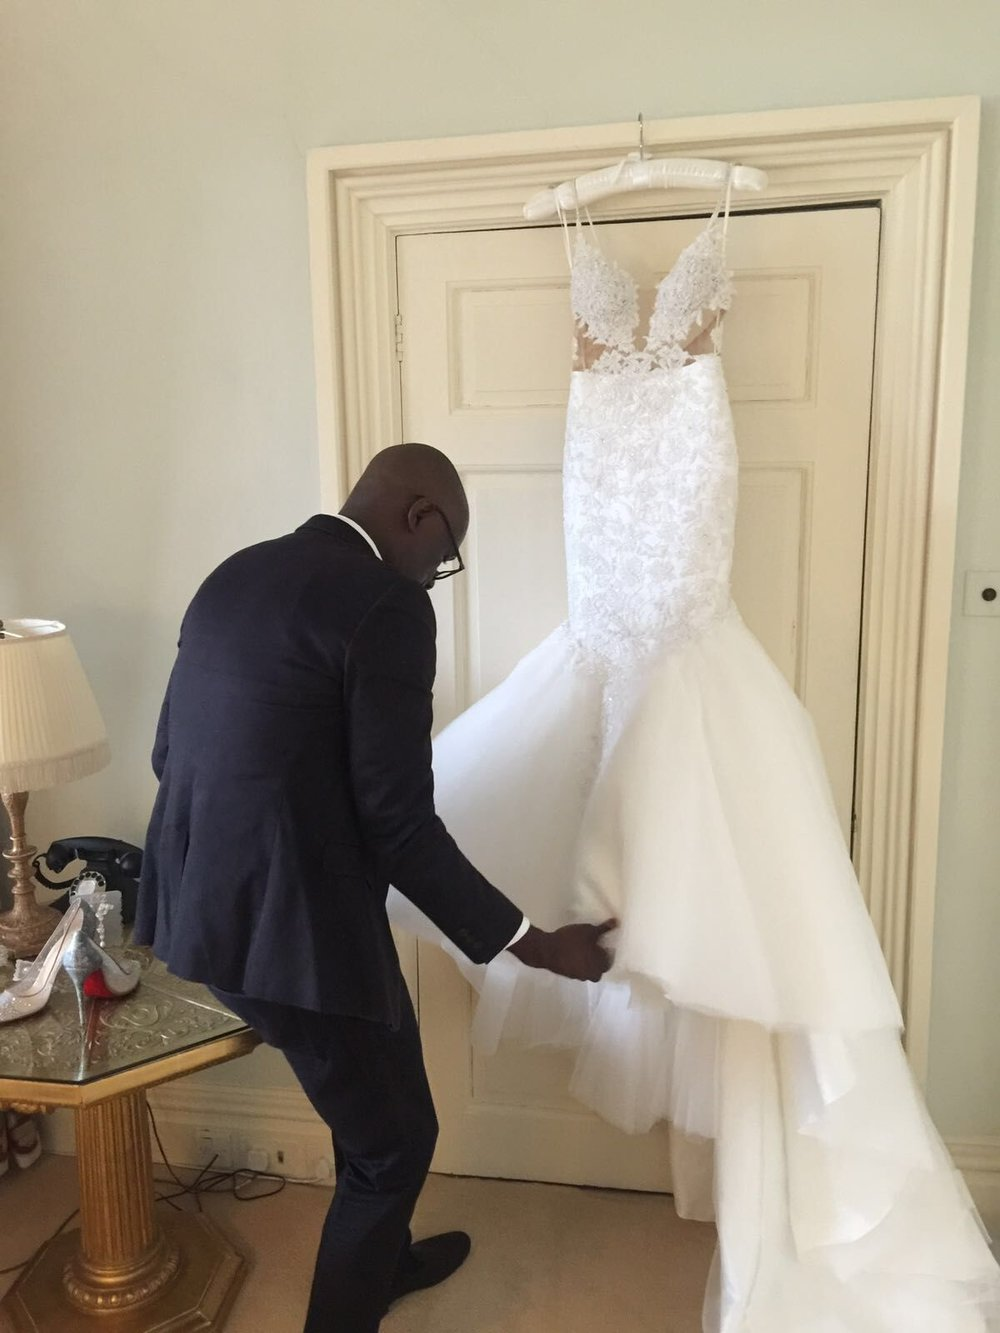 Designer Yemi Osunkoya at work on a bride's big day